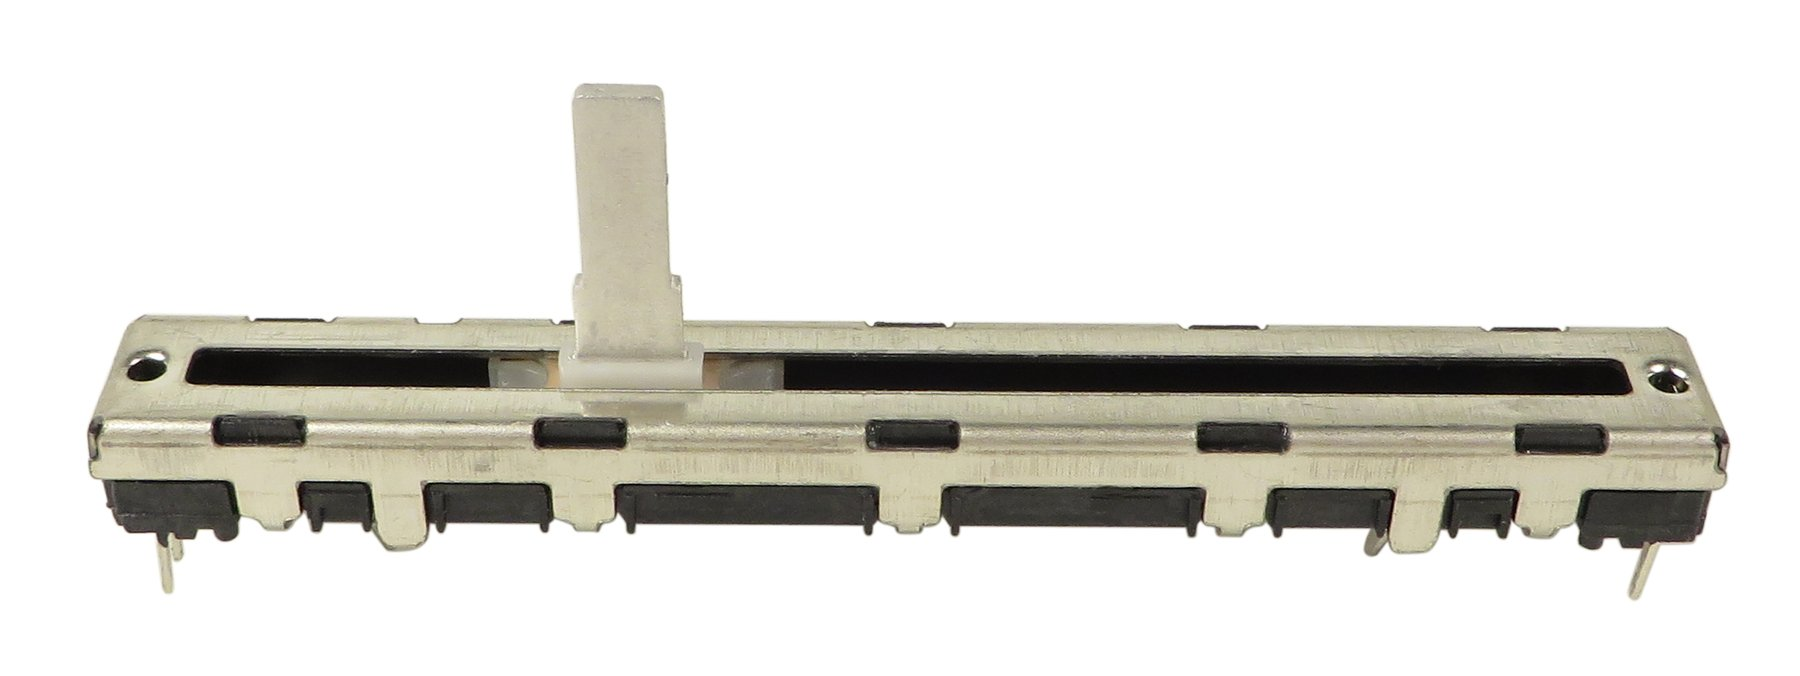 Mono Channel Fader for PV8, 24FX, and Escort 3000